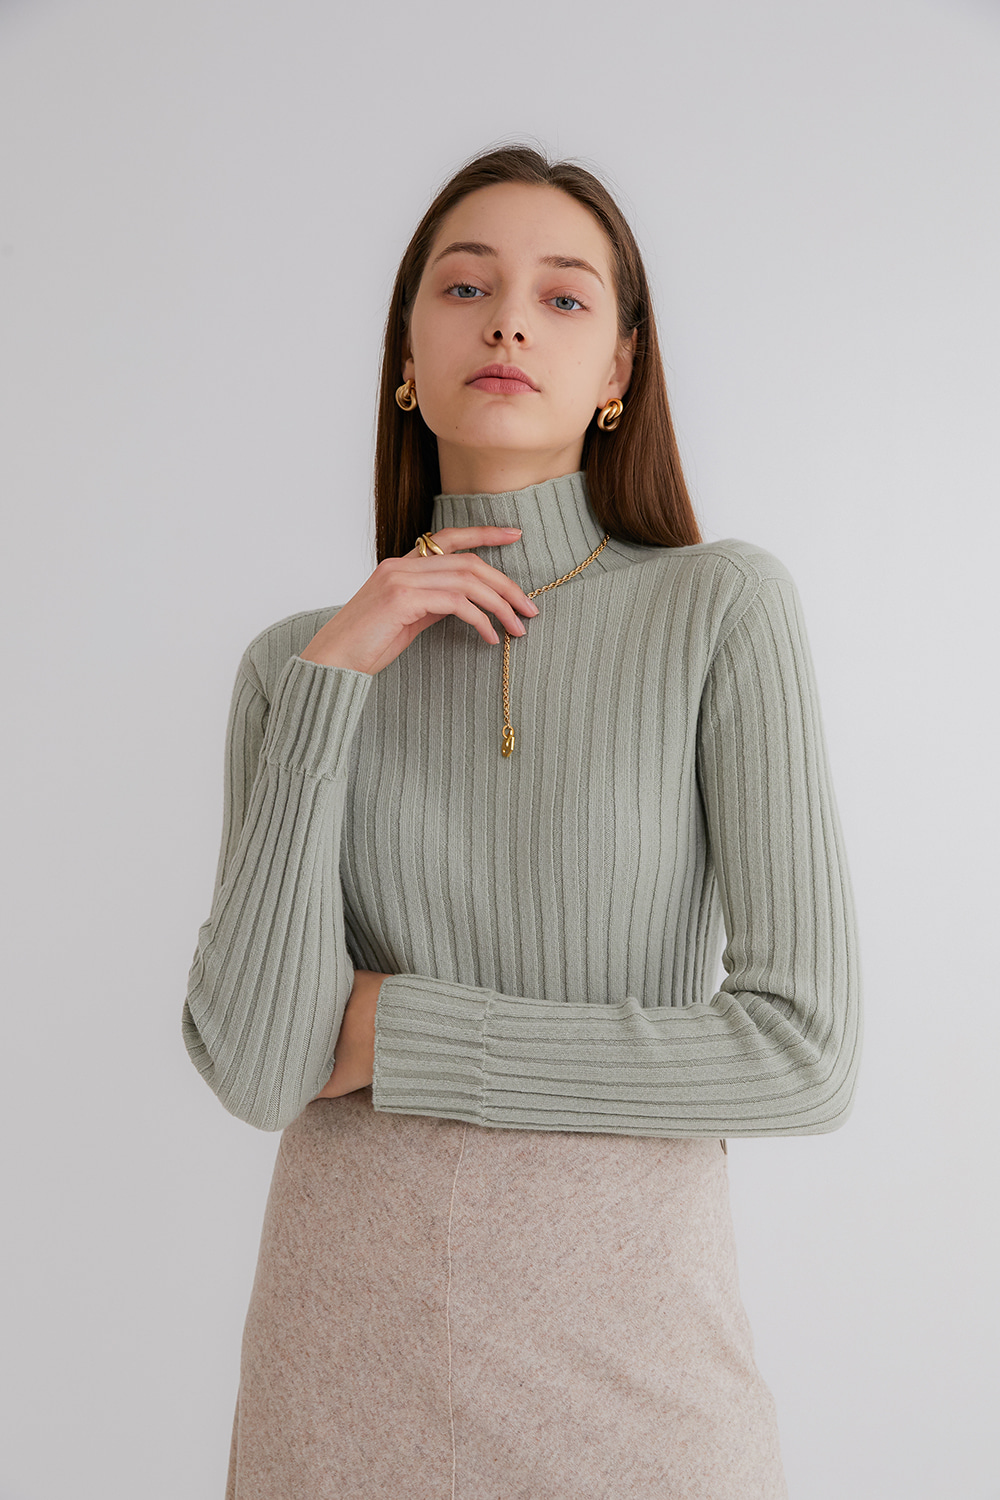 Pure cashmere100 ribbed soft-touch sweater by whole-garment knitting - SAGE MINT (인기 상품/주문 폭주)